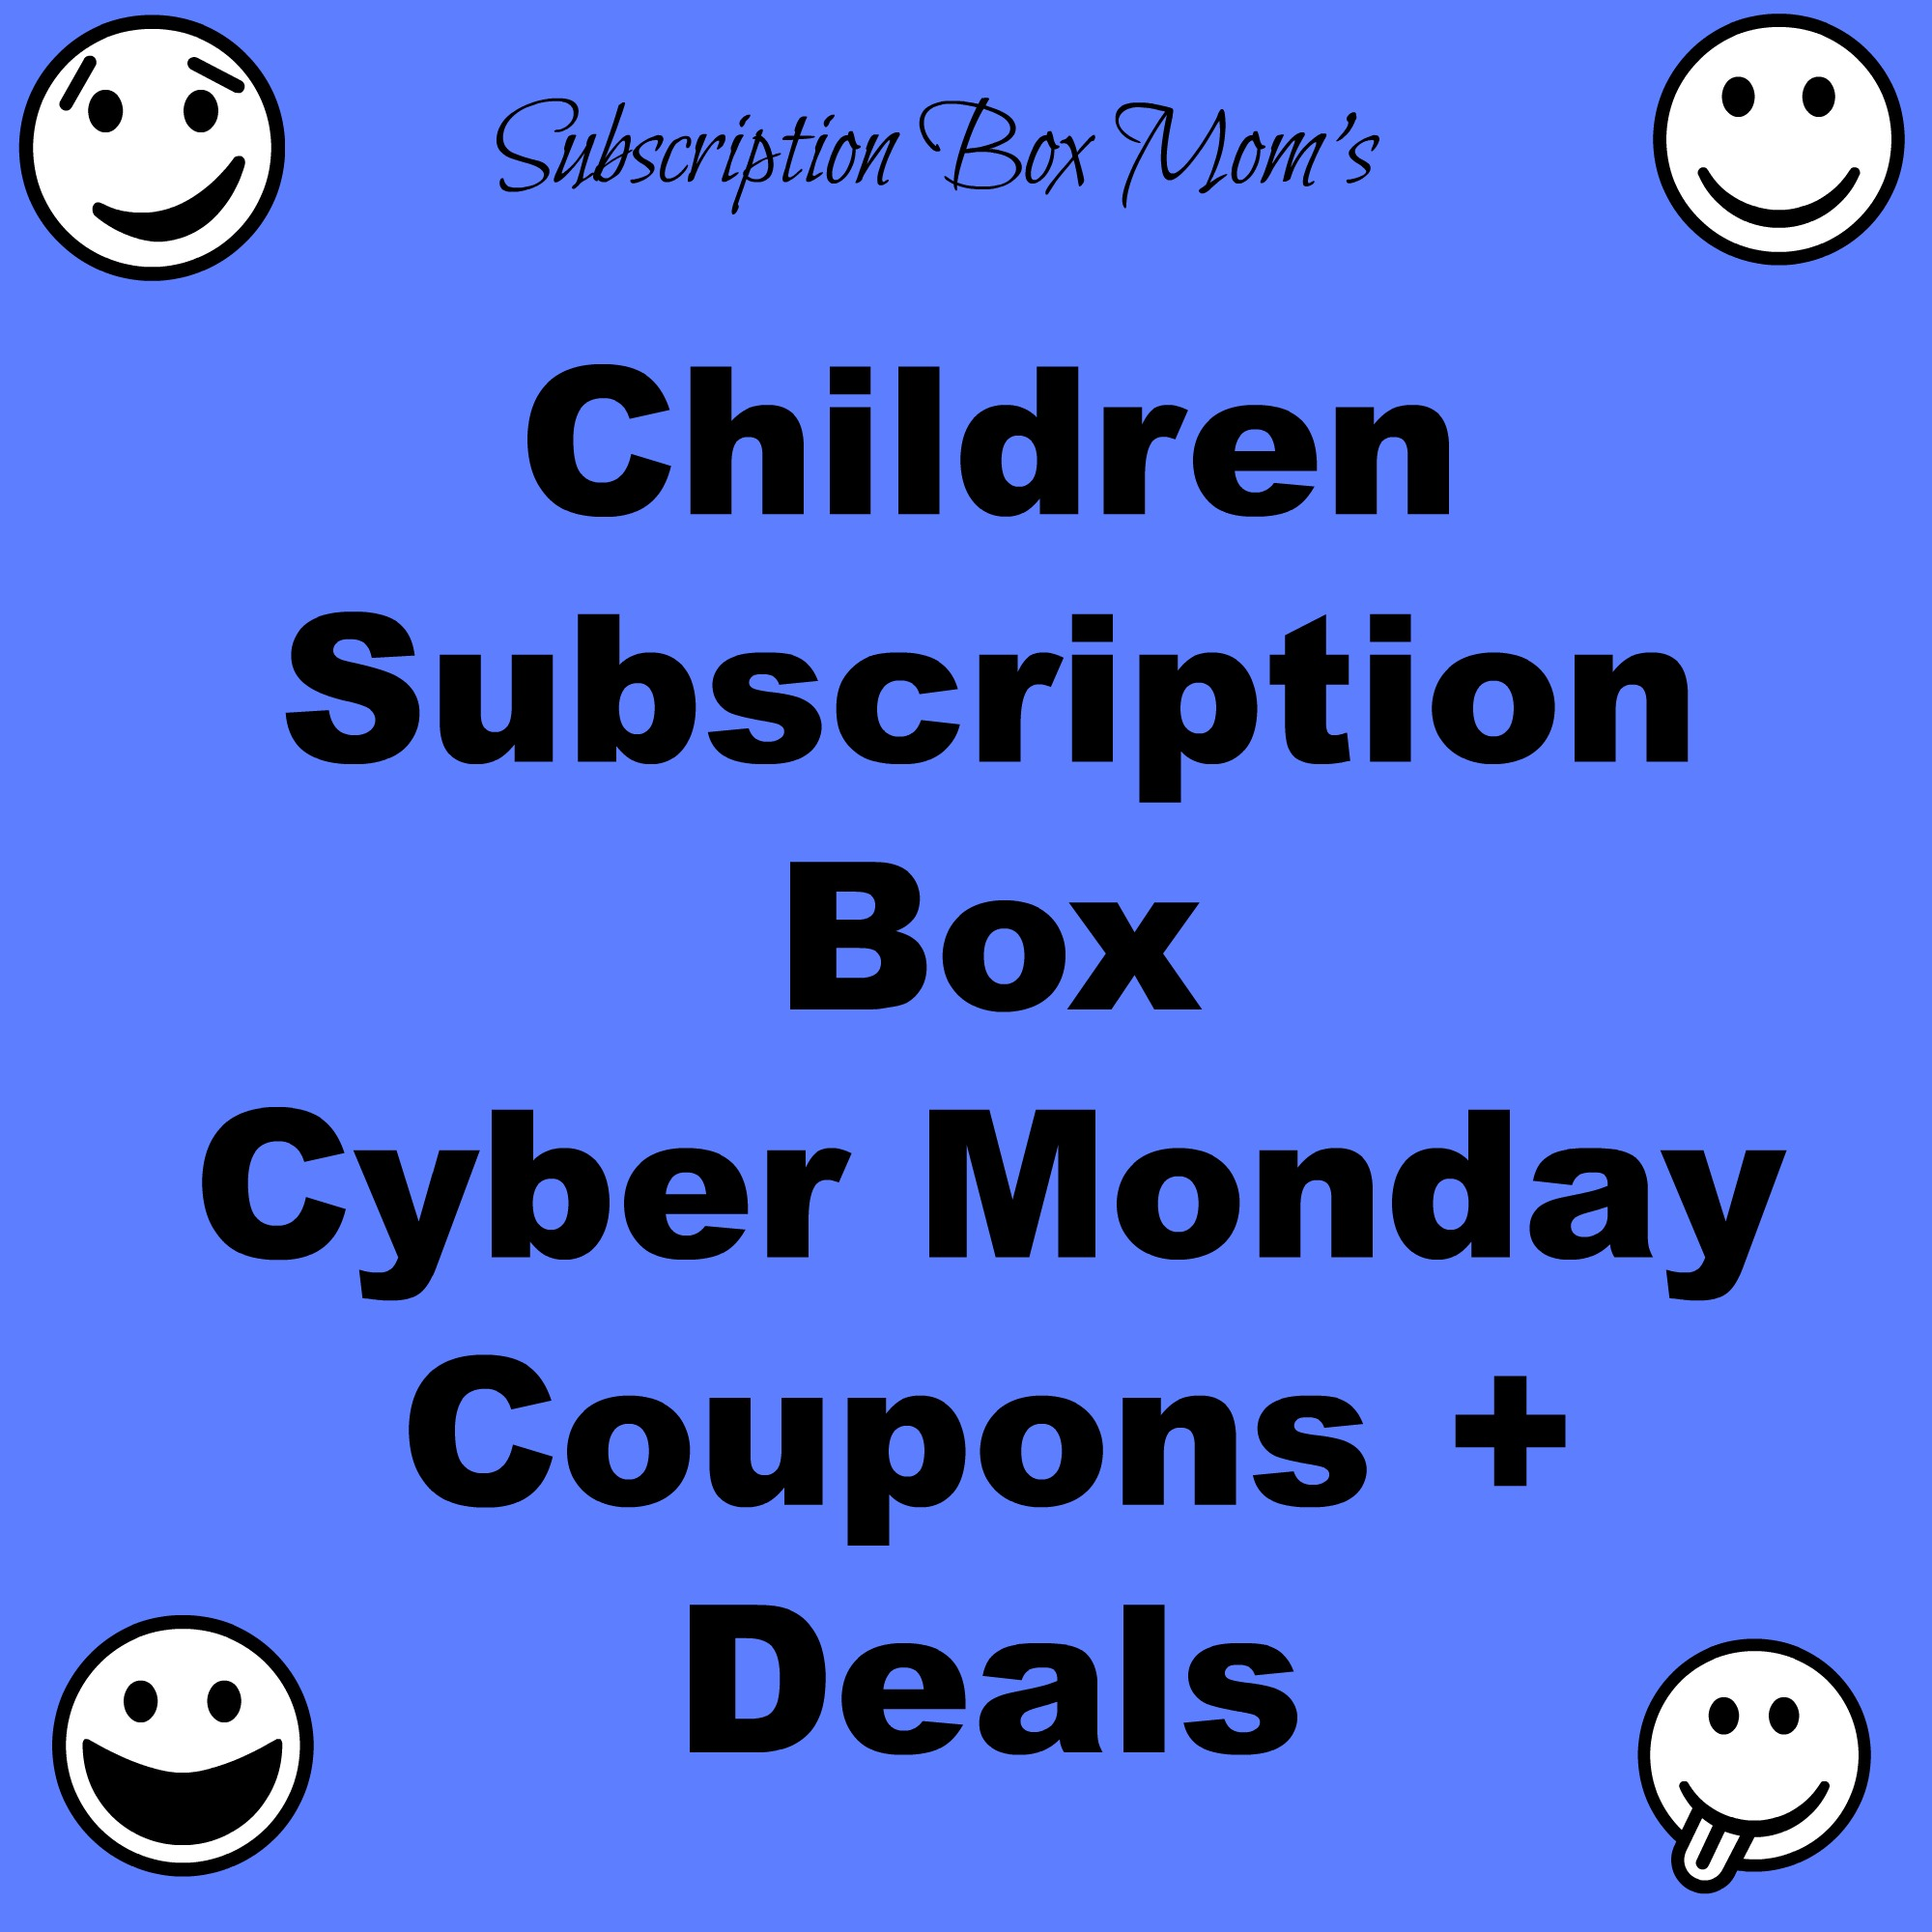 Boxed deal coupon code